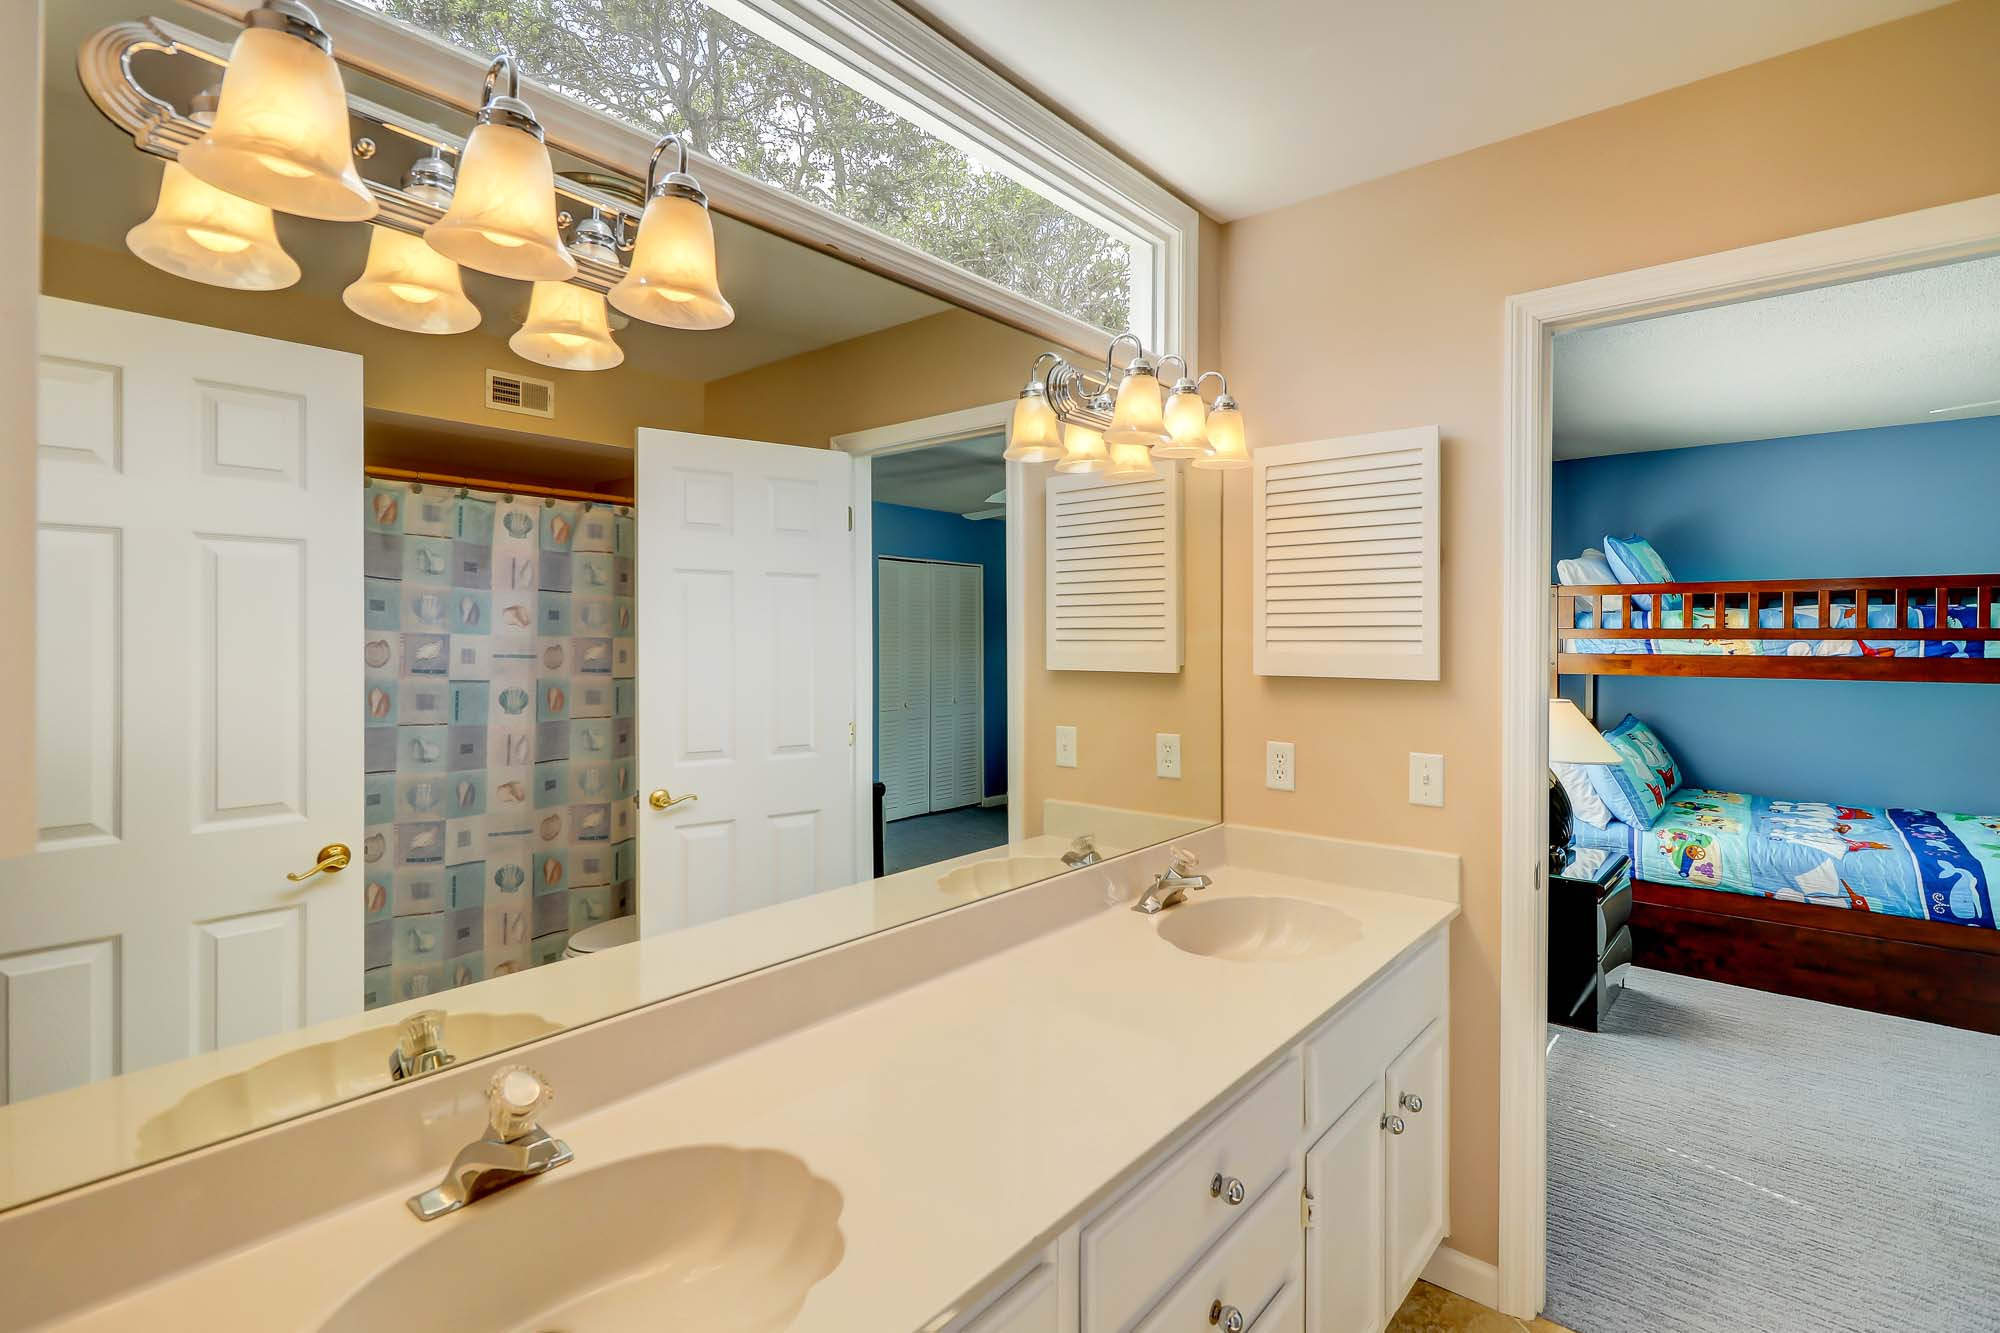 Jack and Jill bath shared between bedrooms 3 and 4 on lower level has dual vanities and tub/shower combo